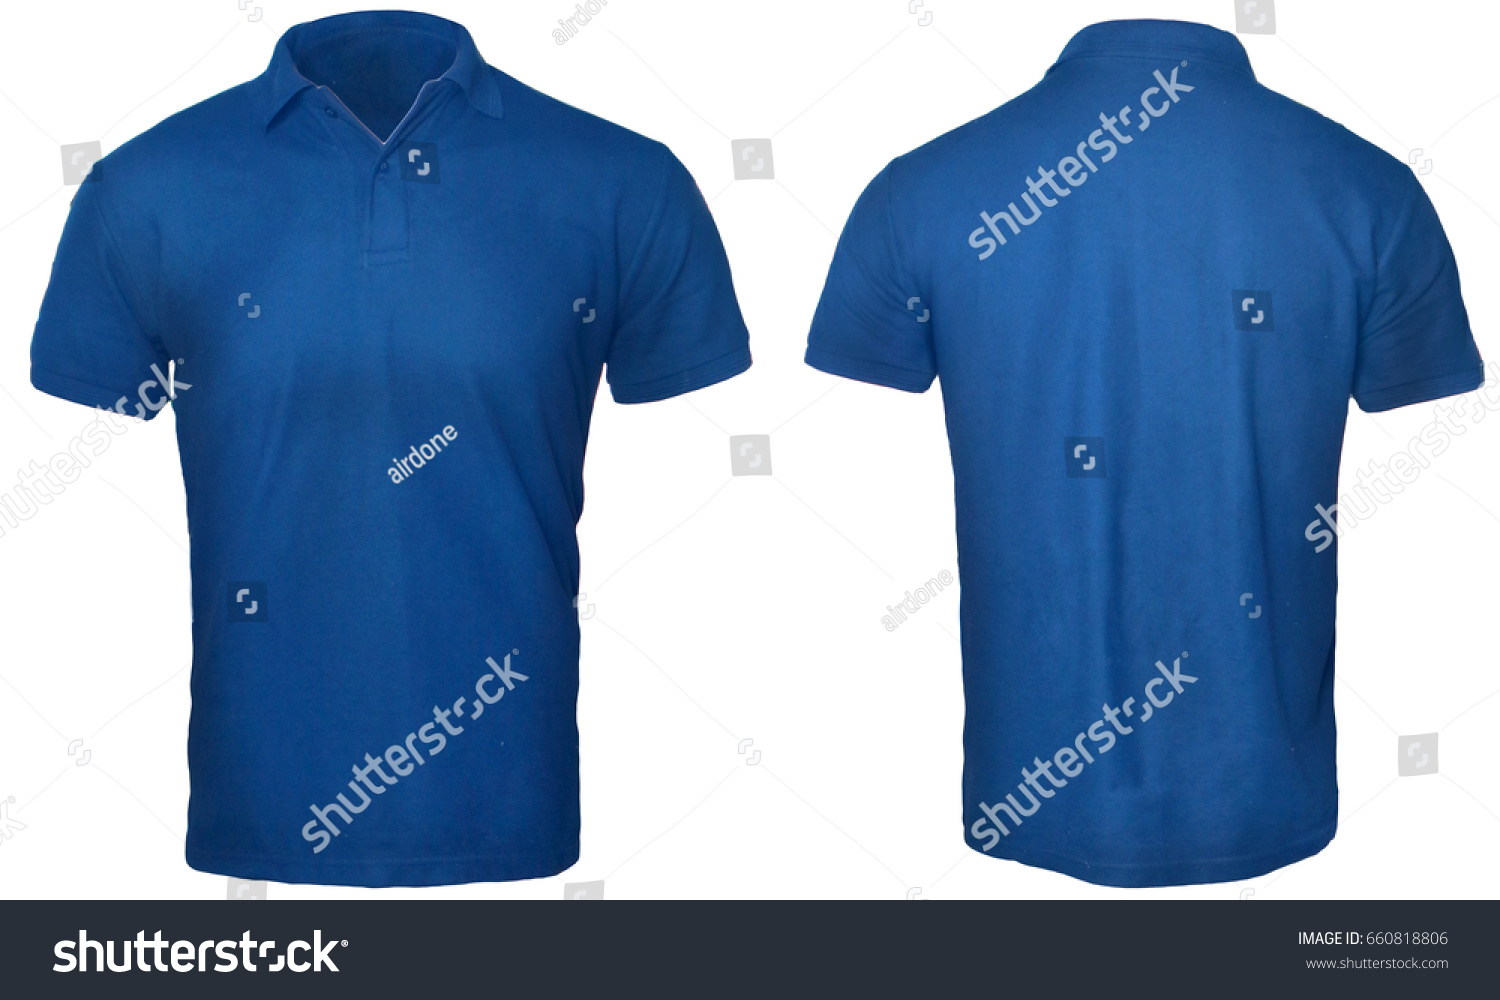 T shirt plain white front and back - Blank Polo Shirt Mock Up Template Front And Back View Isolated On White